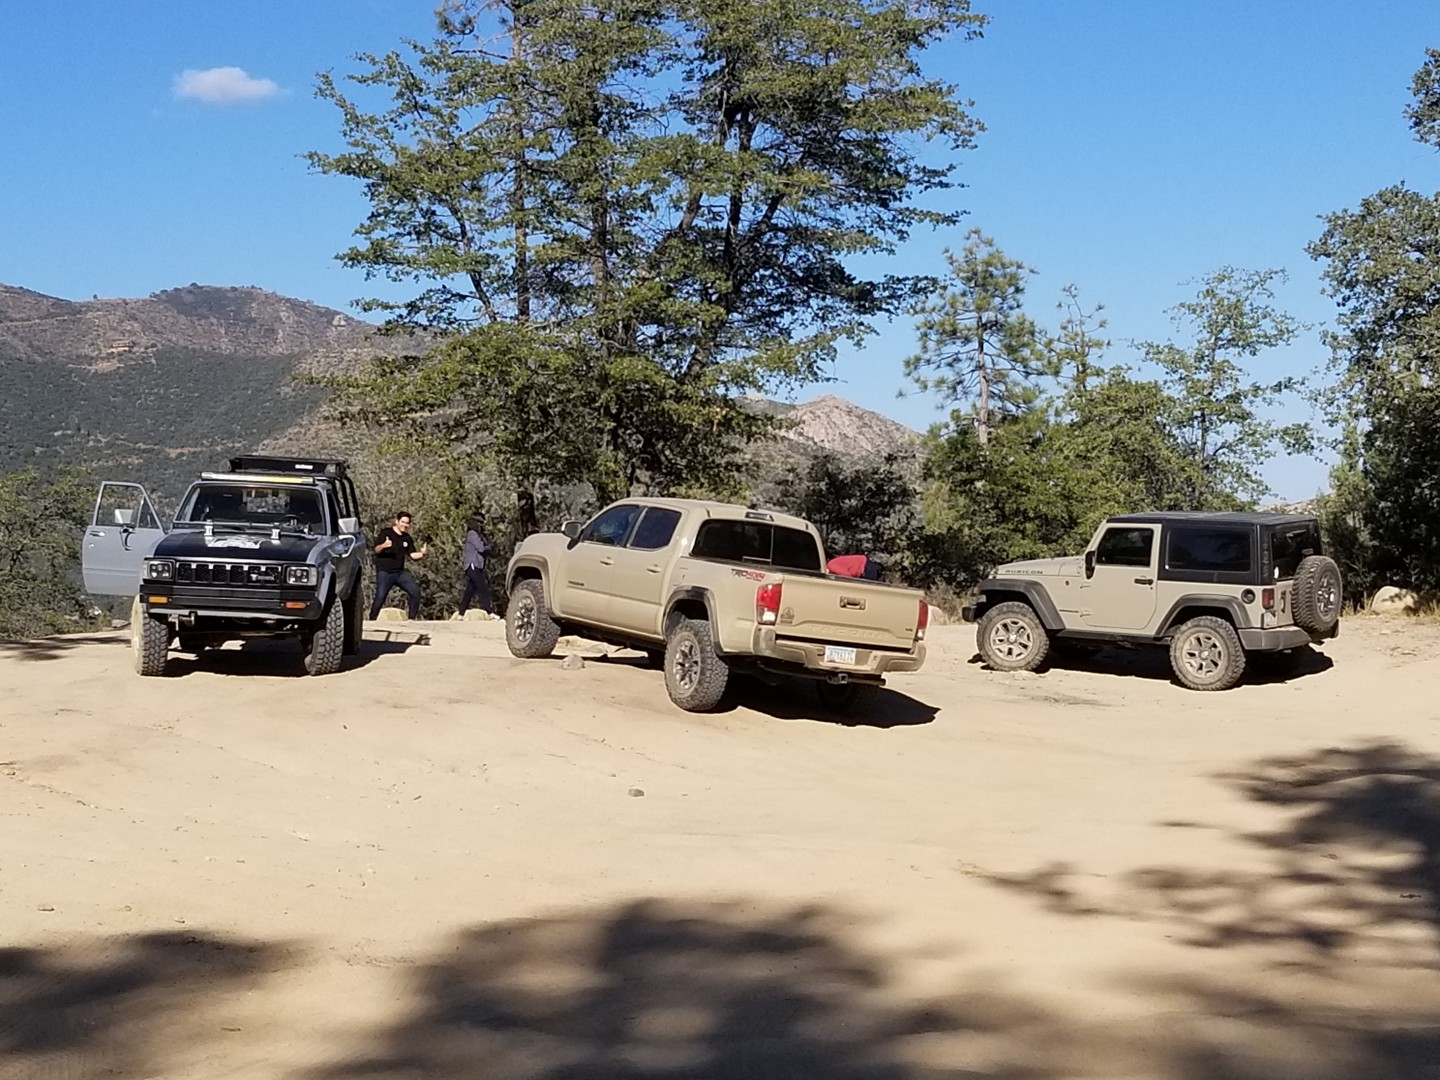 Trail Review: Backway to Crown King, Arizona